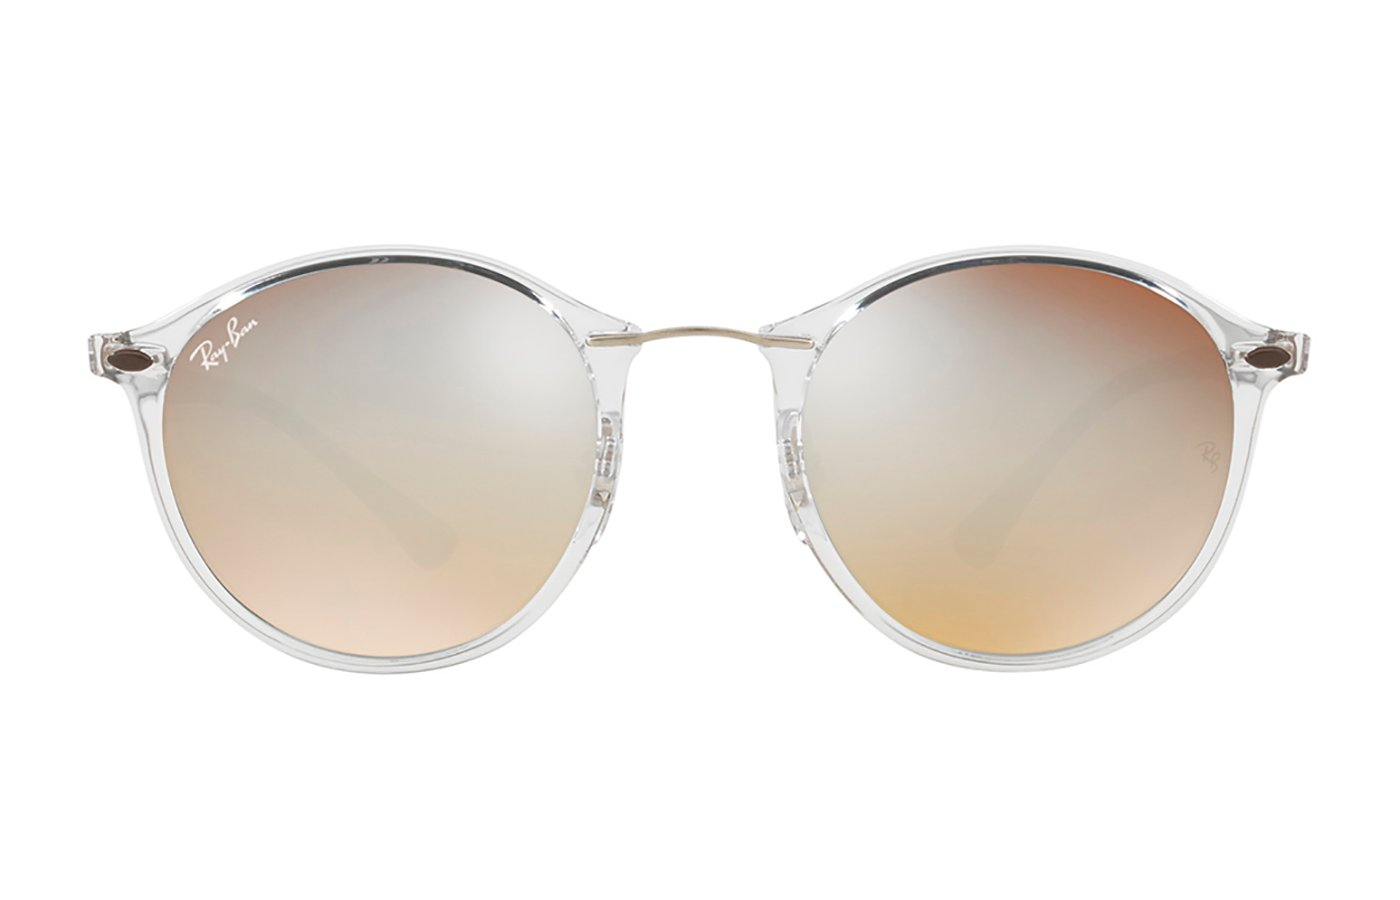 RAY-BAN ROUND II LIGHT RAY TRASPARENT 0RB4242 49 6290B8